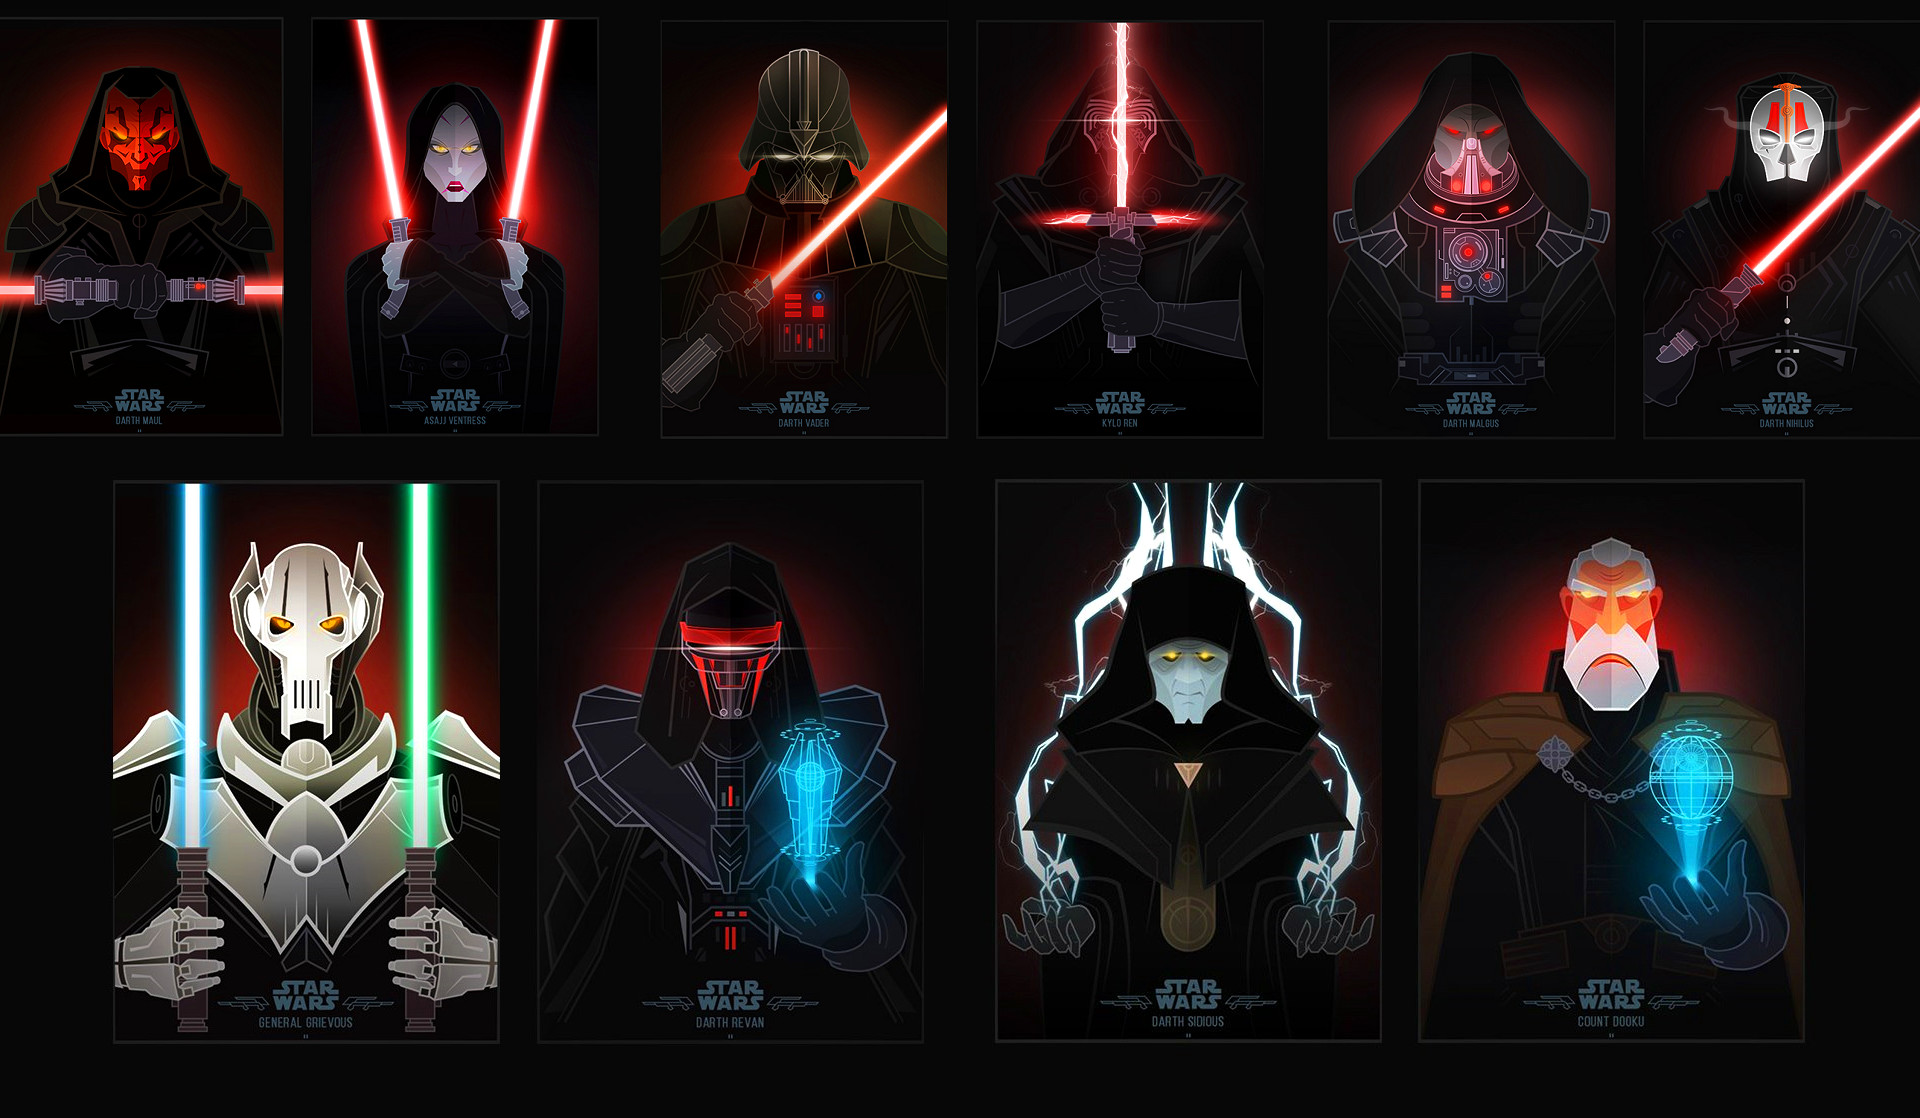 Star Wars Sith Lords Wallpaper 68 Images